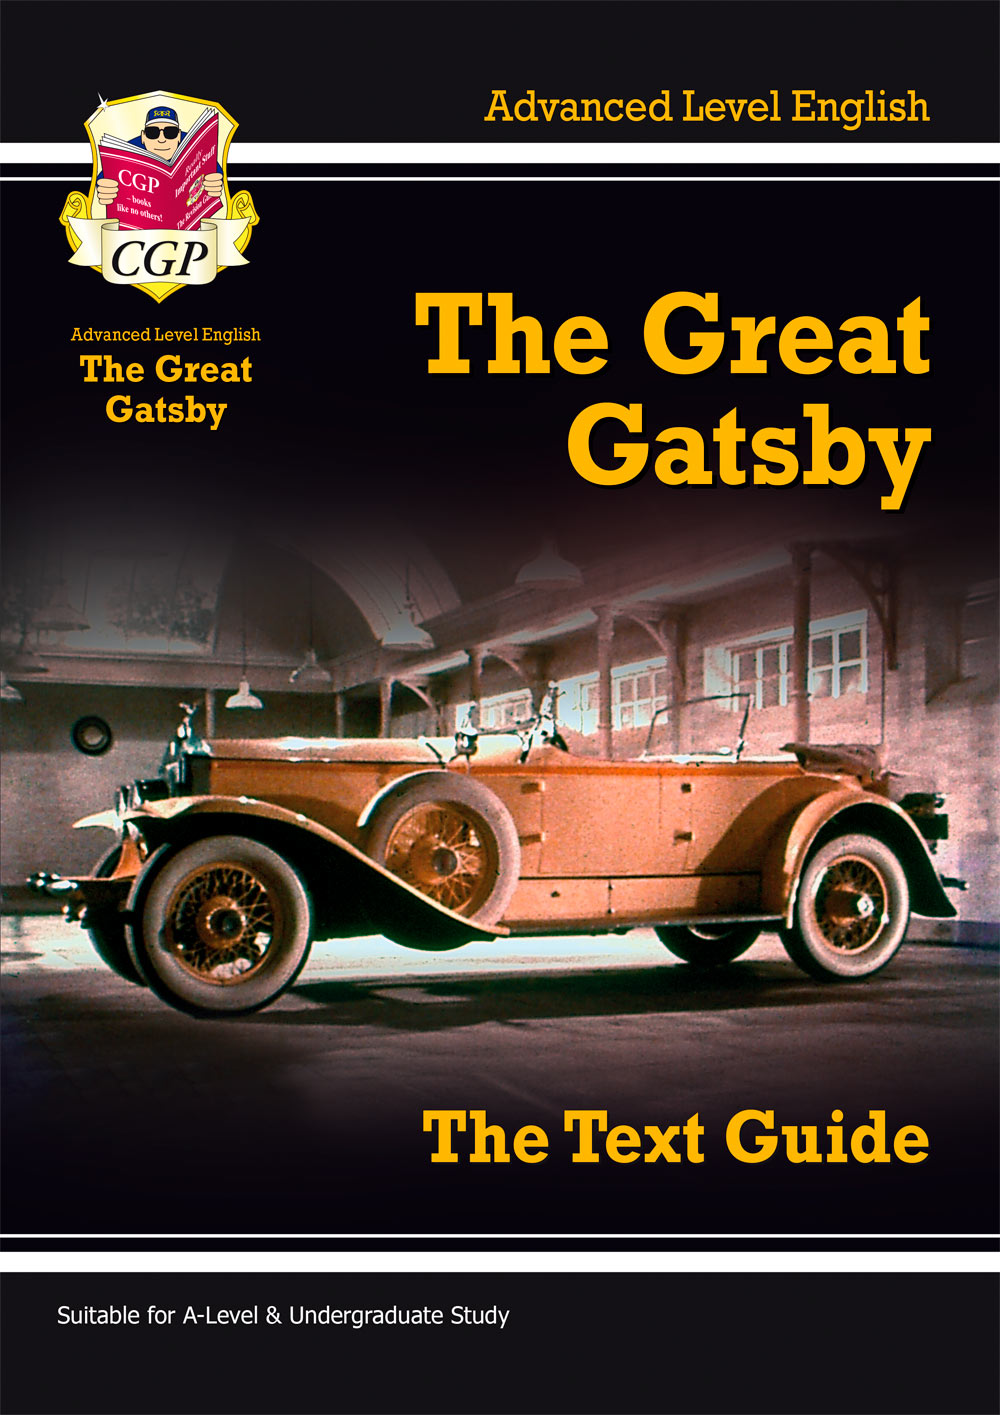 ETGG73 - A-level English Text Guide - The Great Gatsby